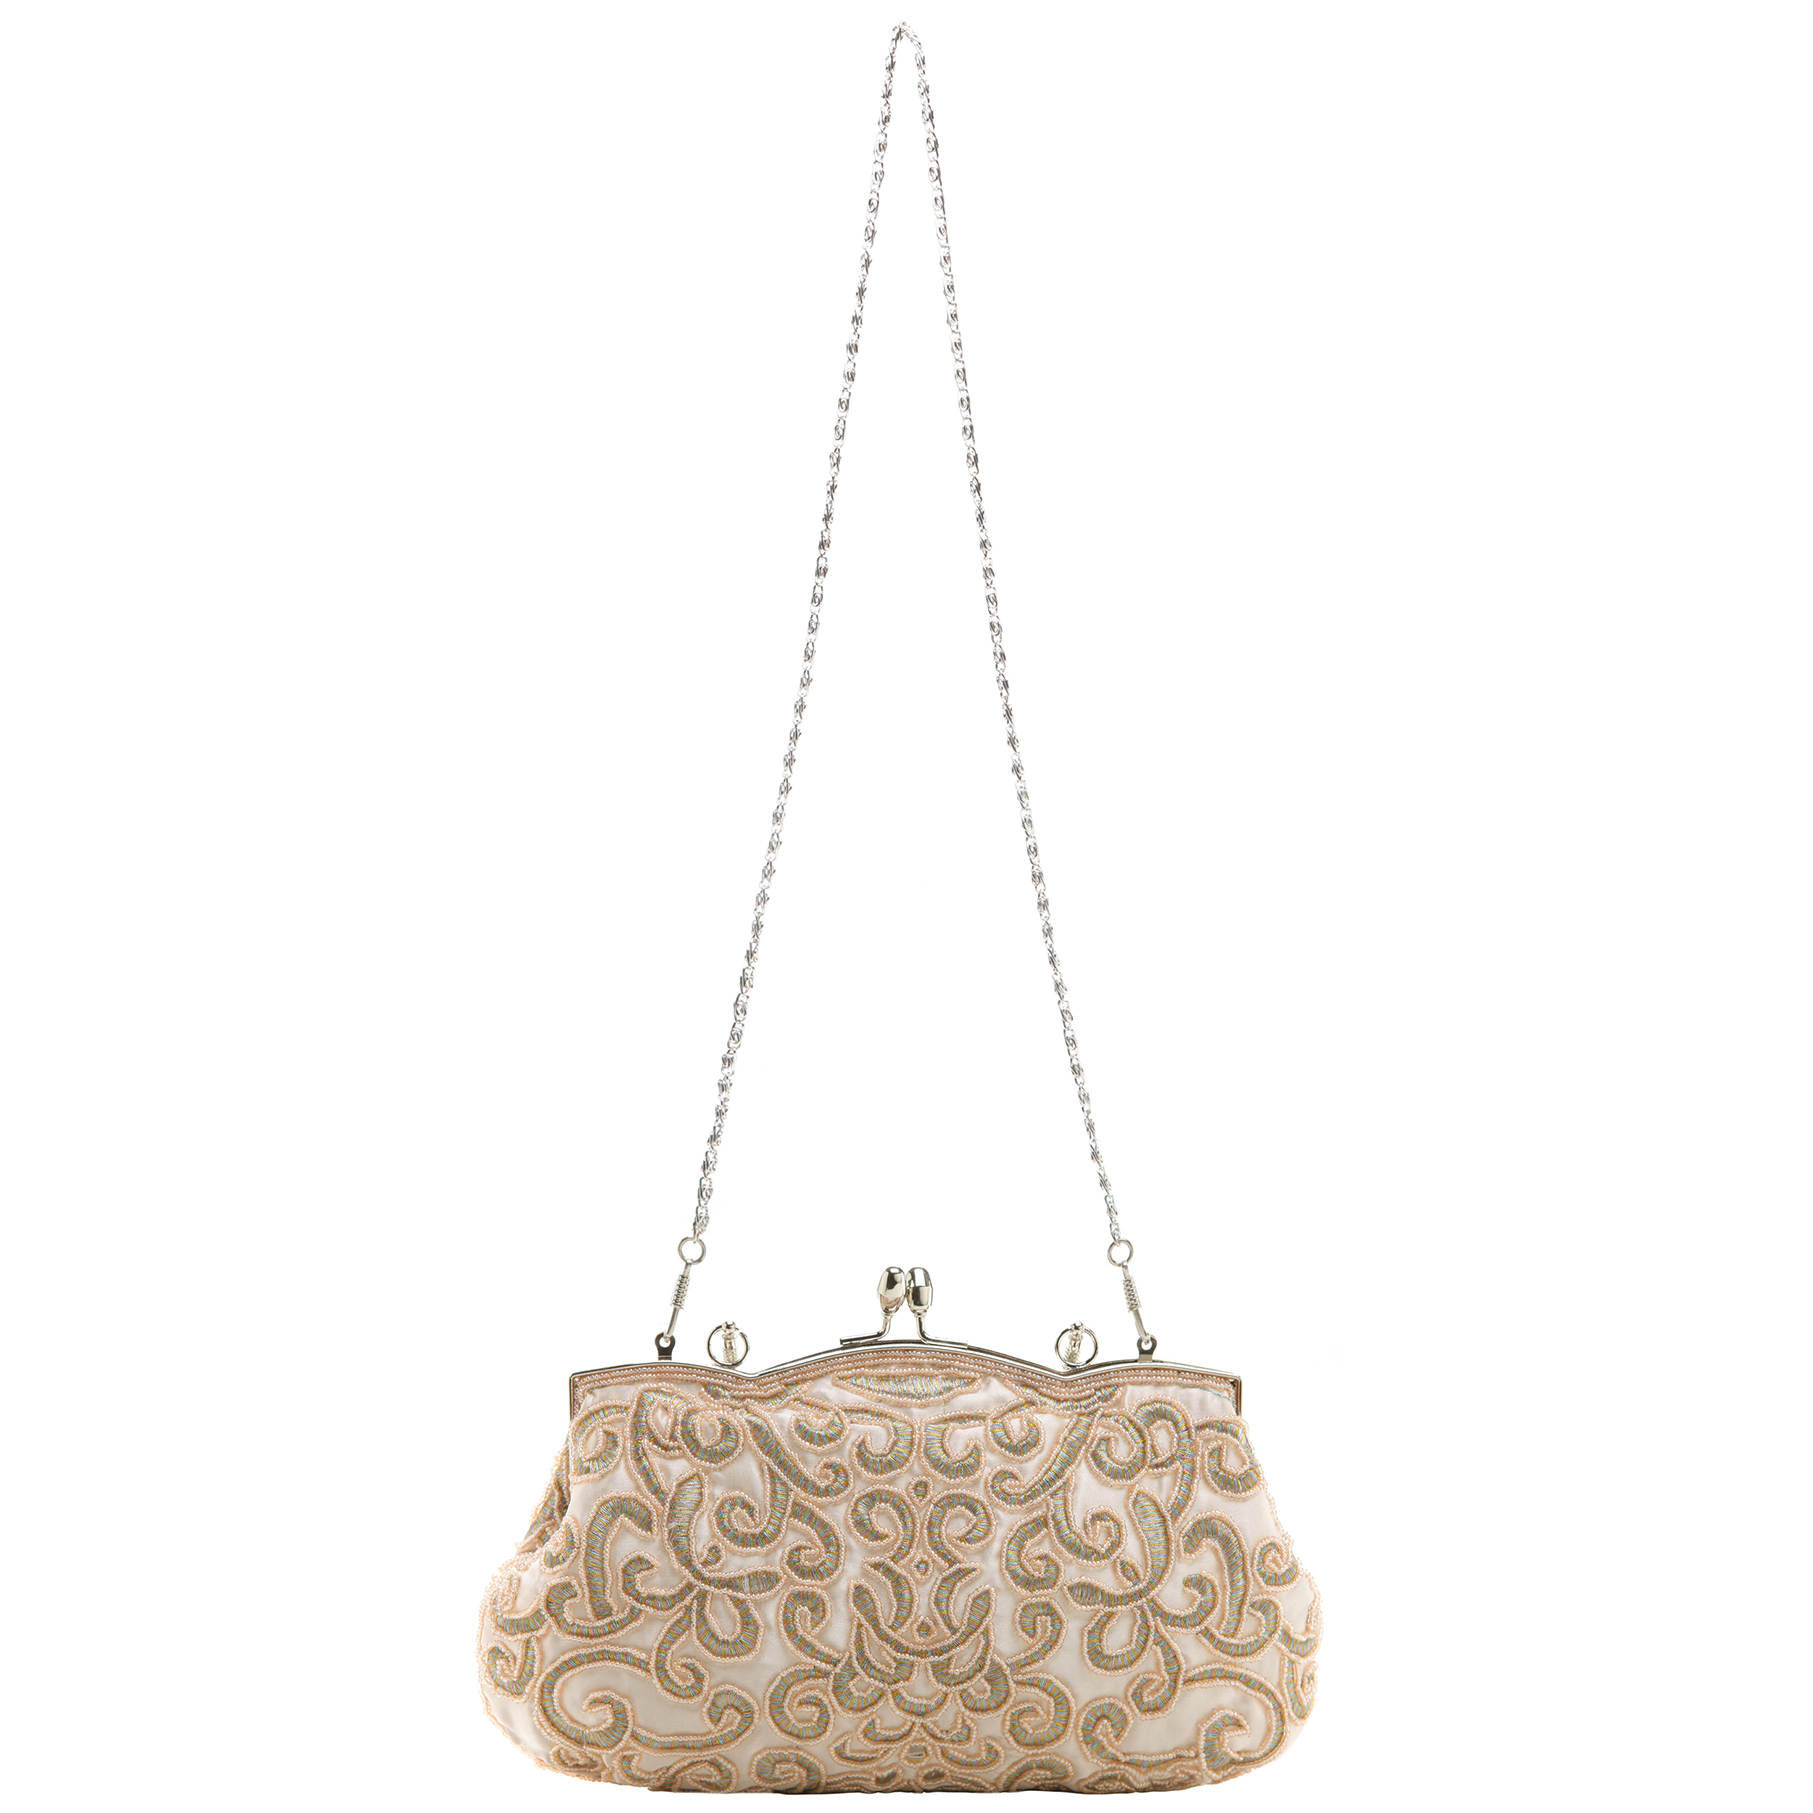 ADELE Champagne Embroidered Evening Handbag long shoulder strap